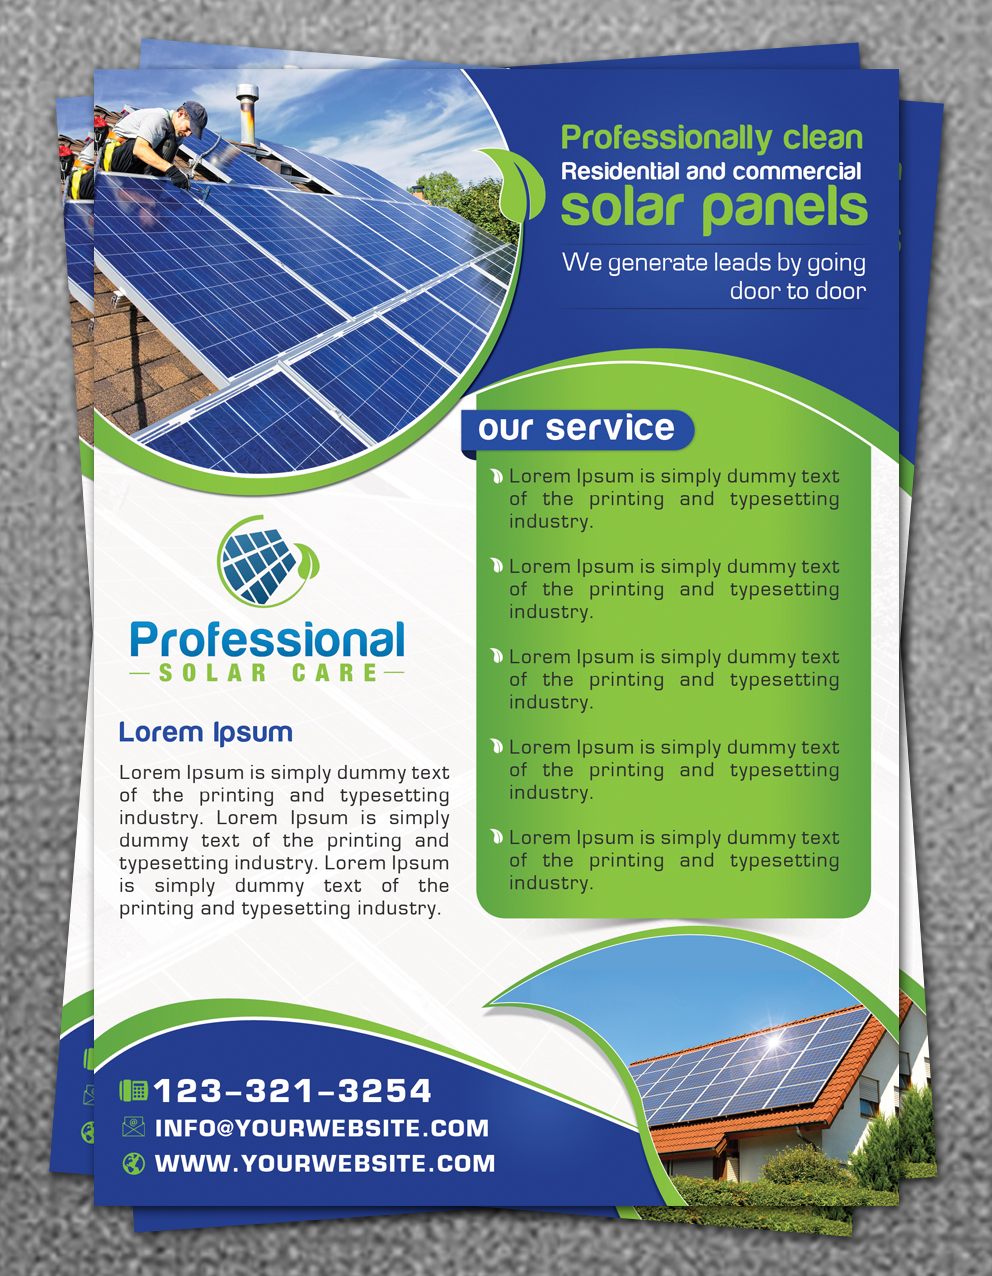 Flyer Design For Professional Solar Care By Hih7 Design